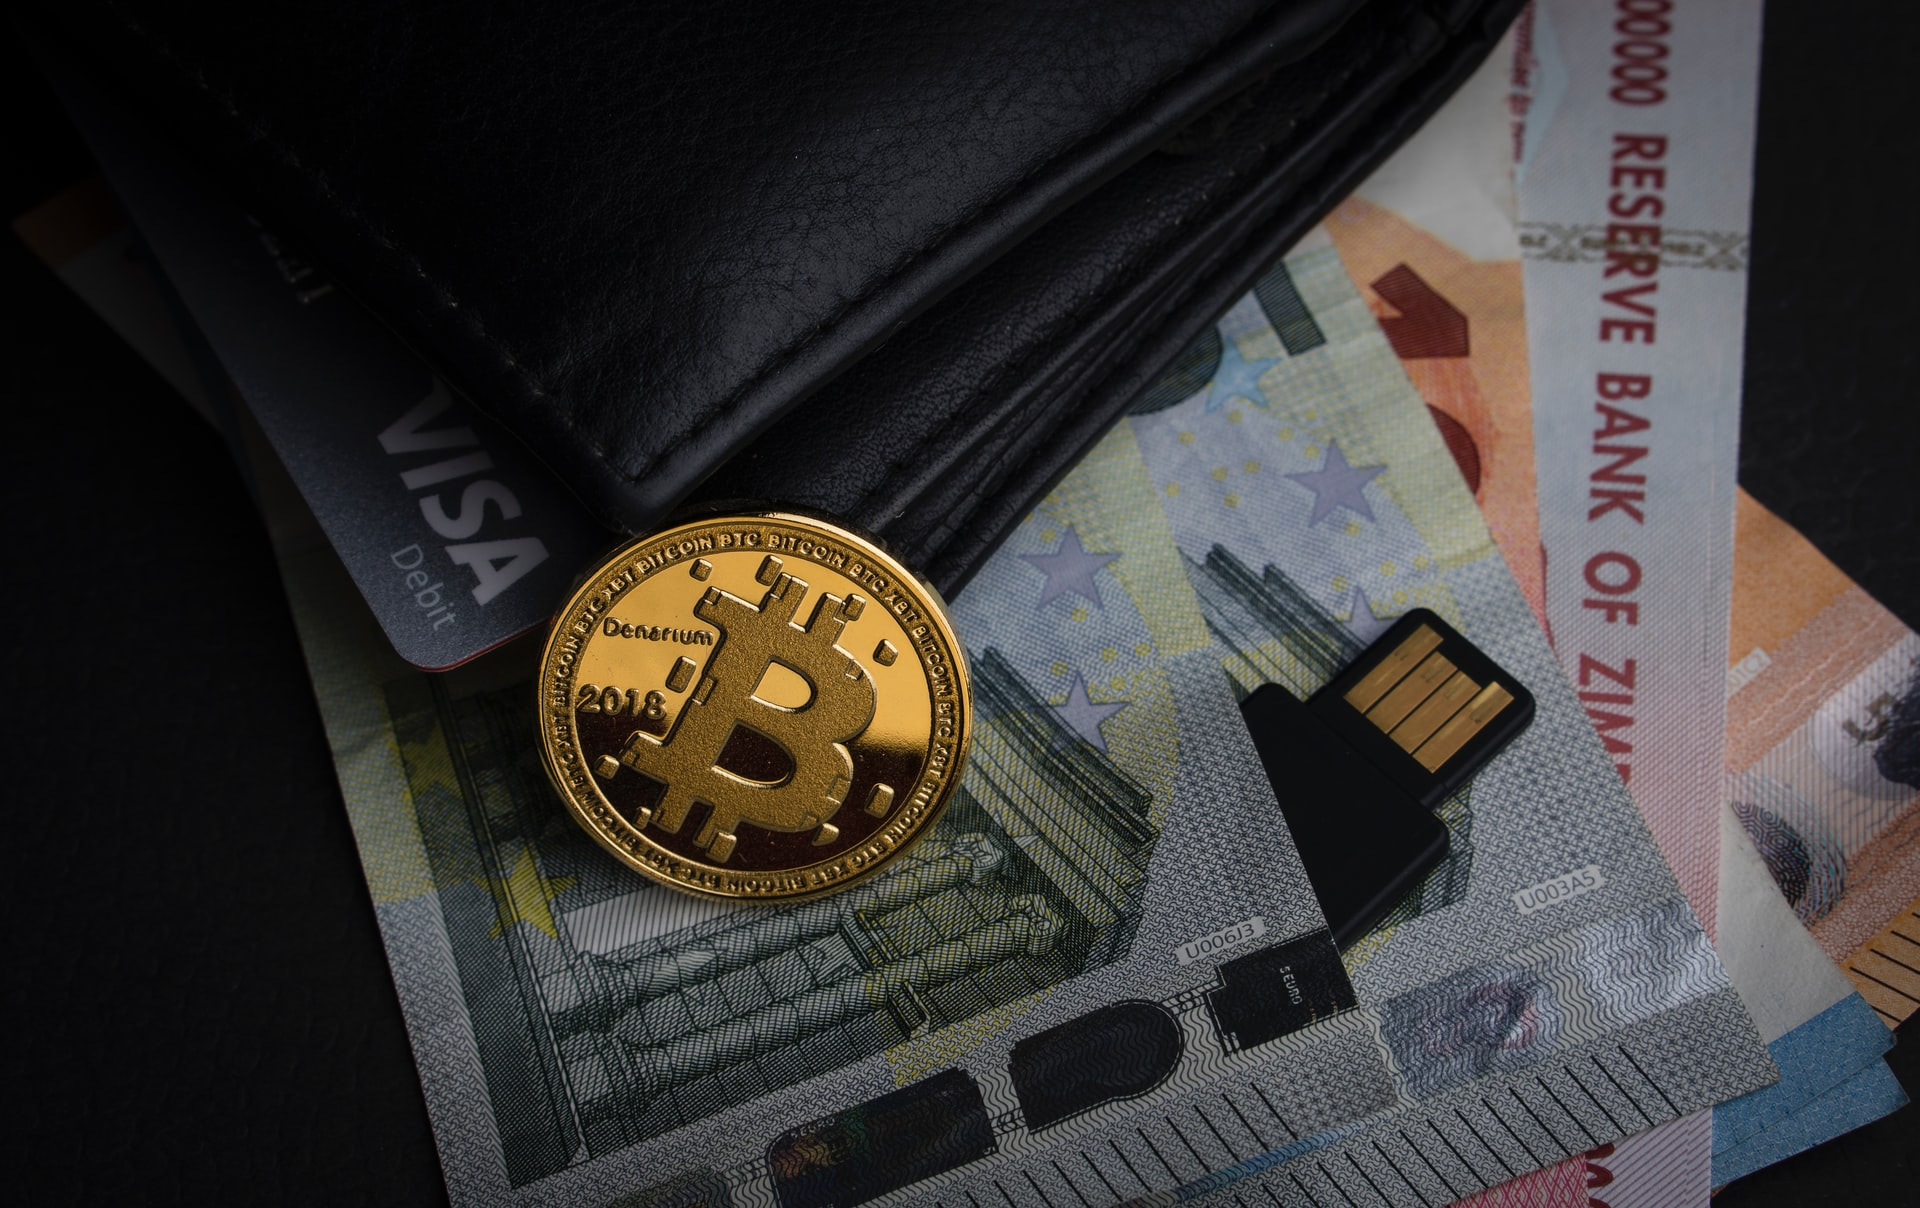 650 US banks can soon offer bitcoin purchases